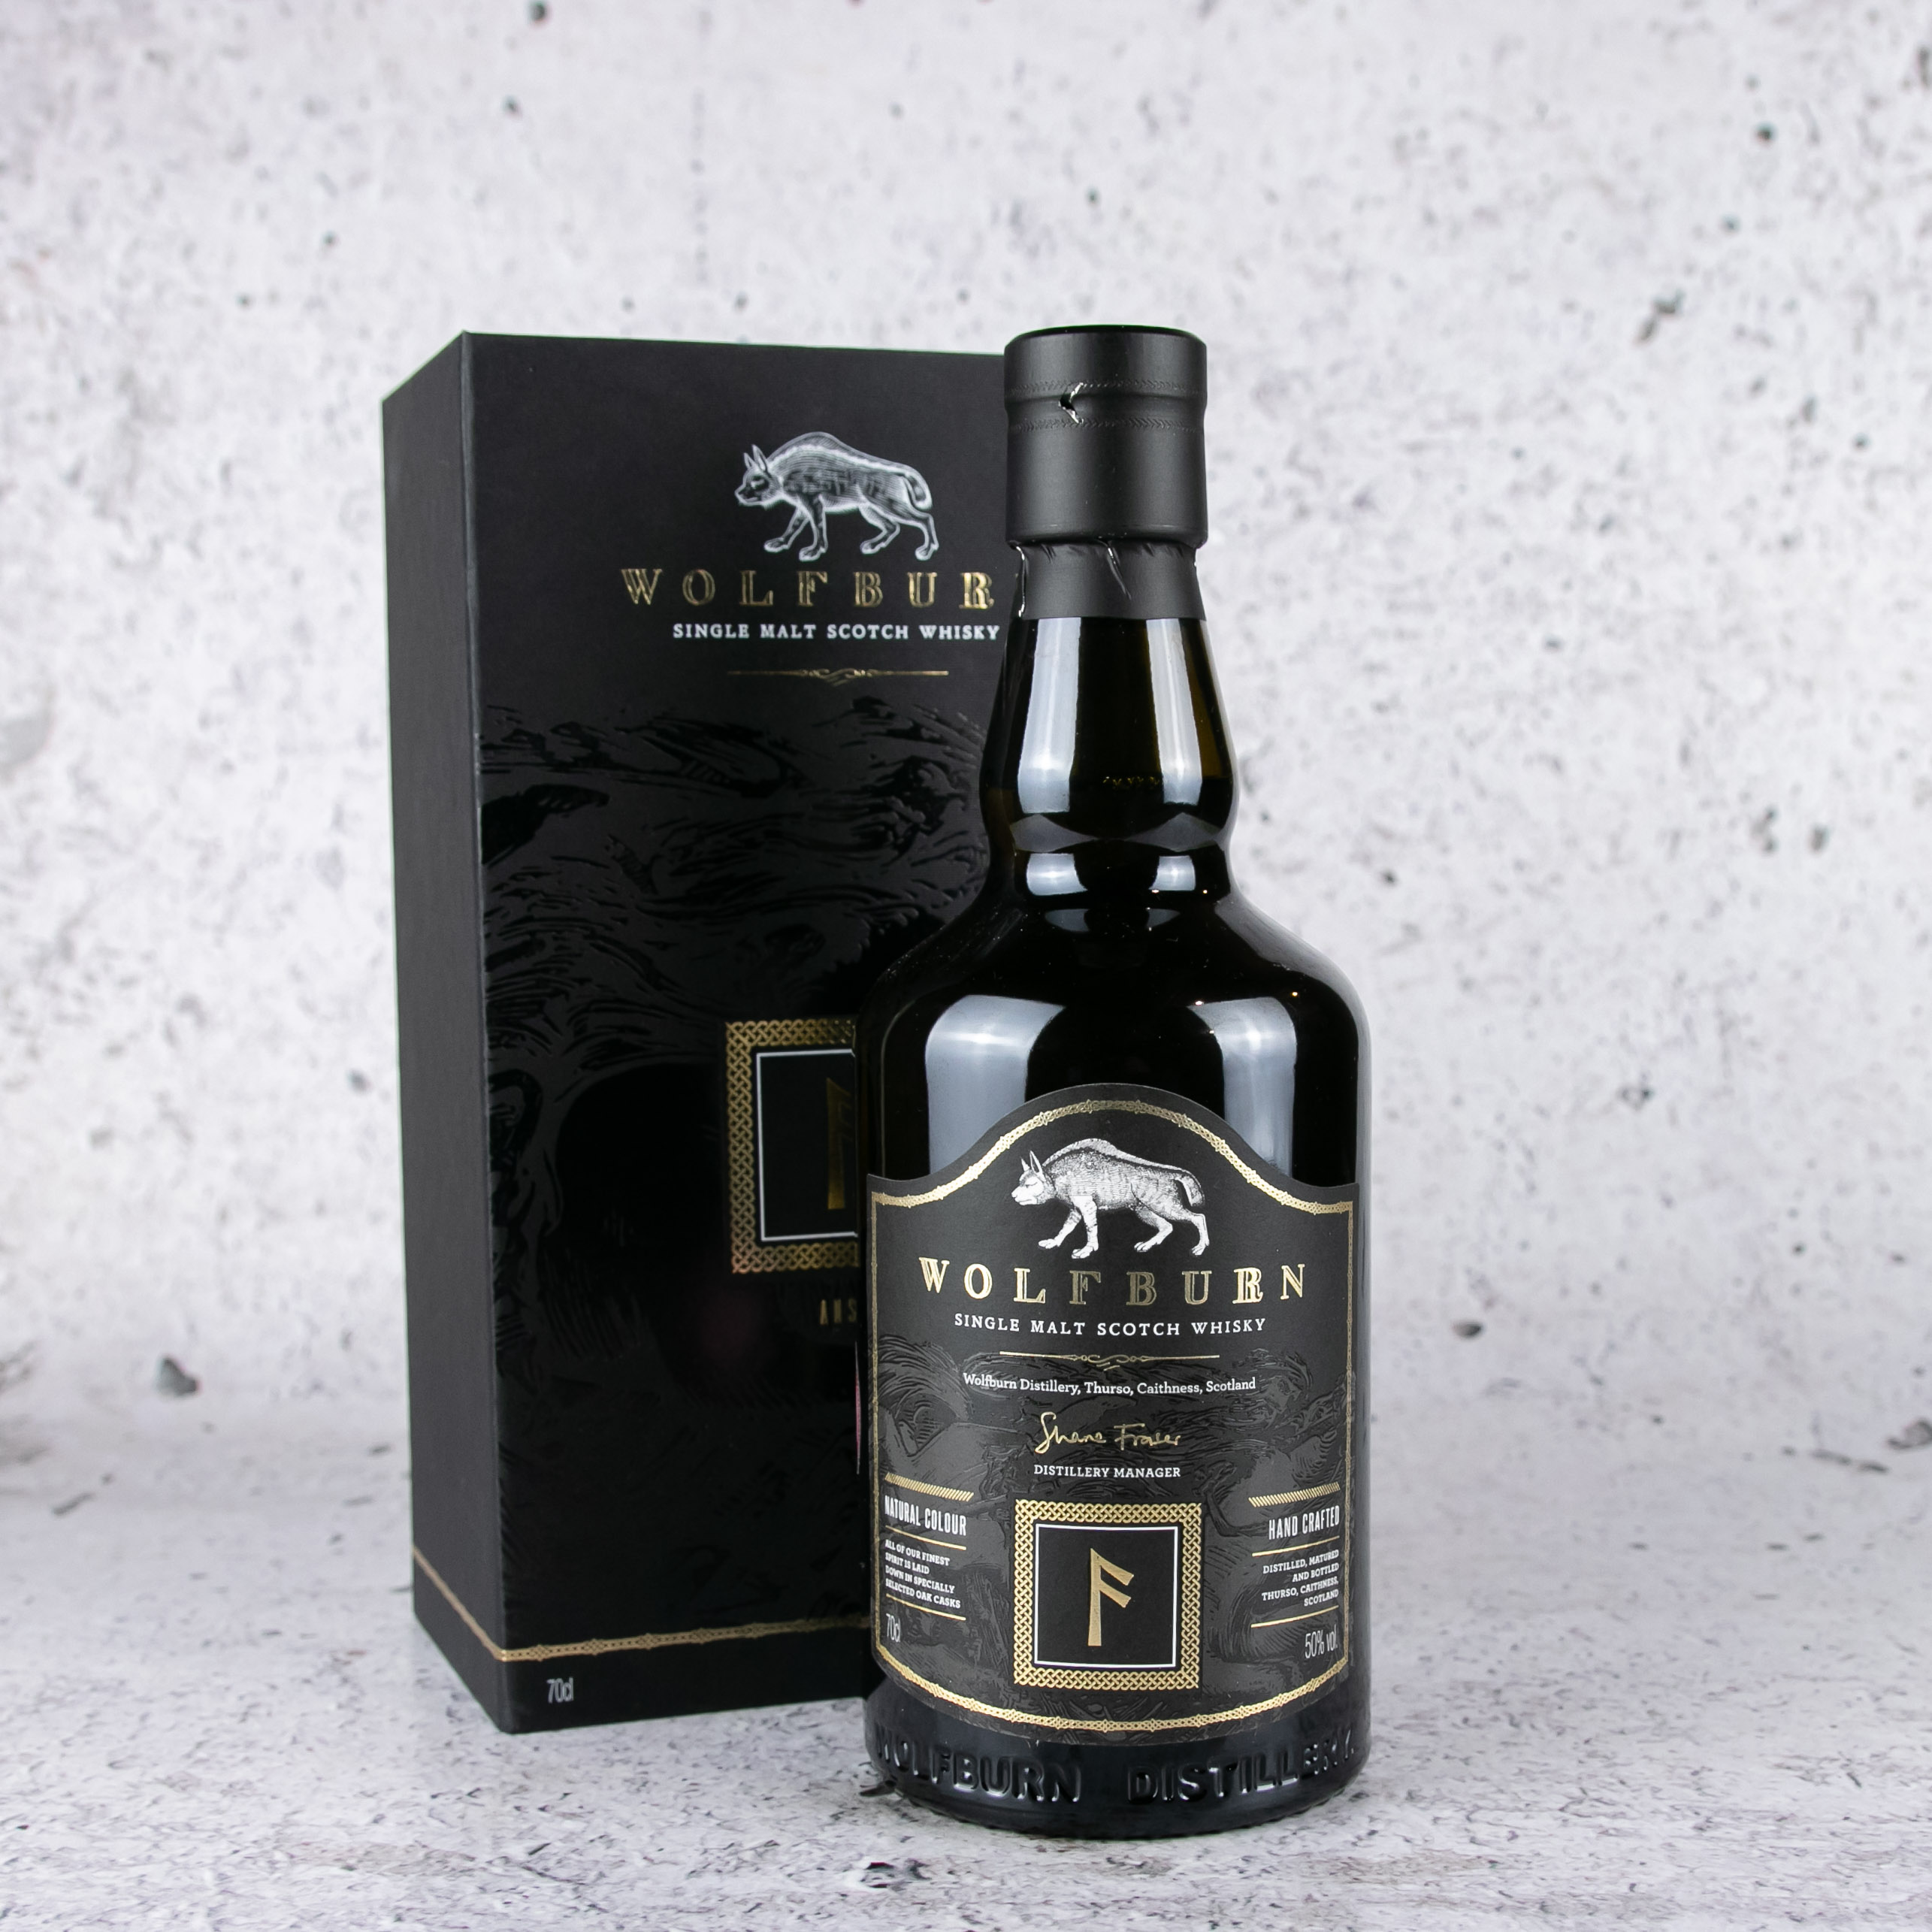 Wolfburn Kylver No.4 Single Malt Scotch Whisky